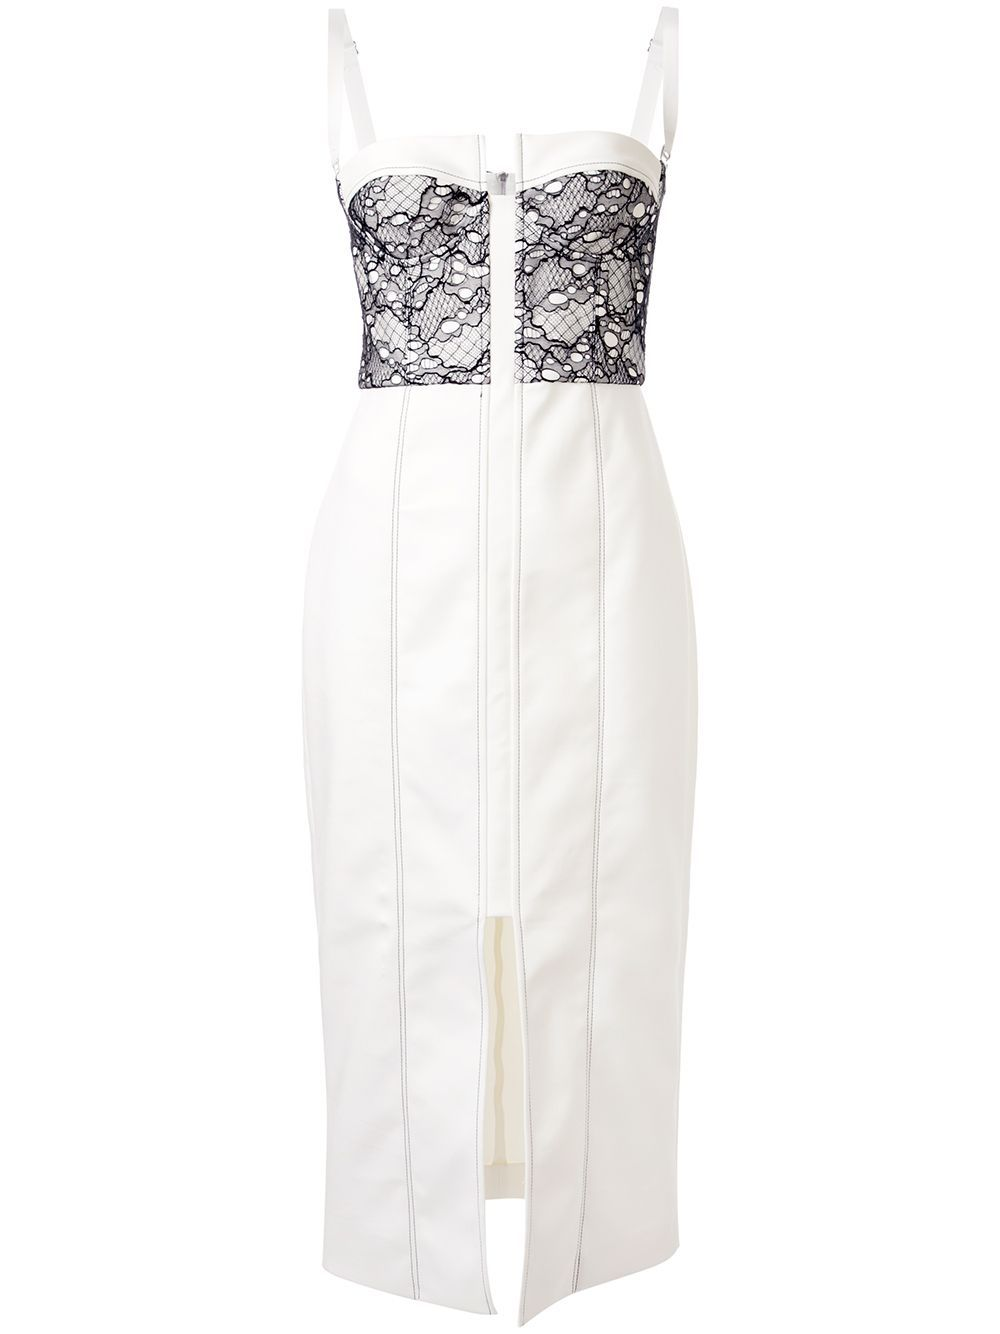 Ivory nylon Lace Column Bustier dress from Dion Lee featuring a sweetheart neckline, adjustable shoulder straps, lace panels, stitching details, darts at the waist, a back zip fastening and a mid-length.